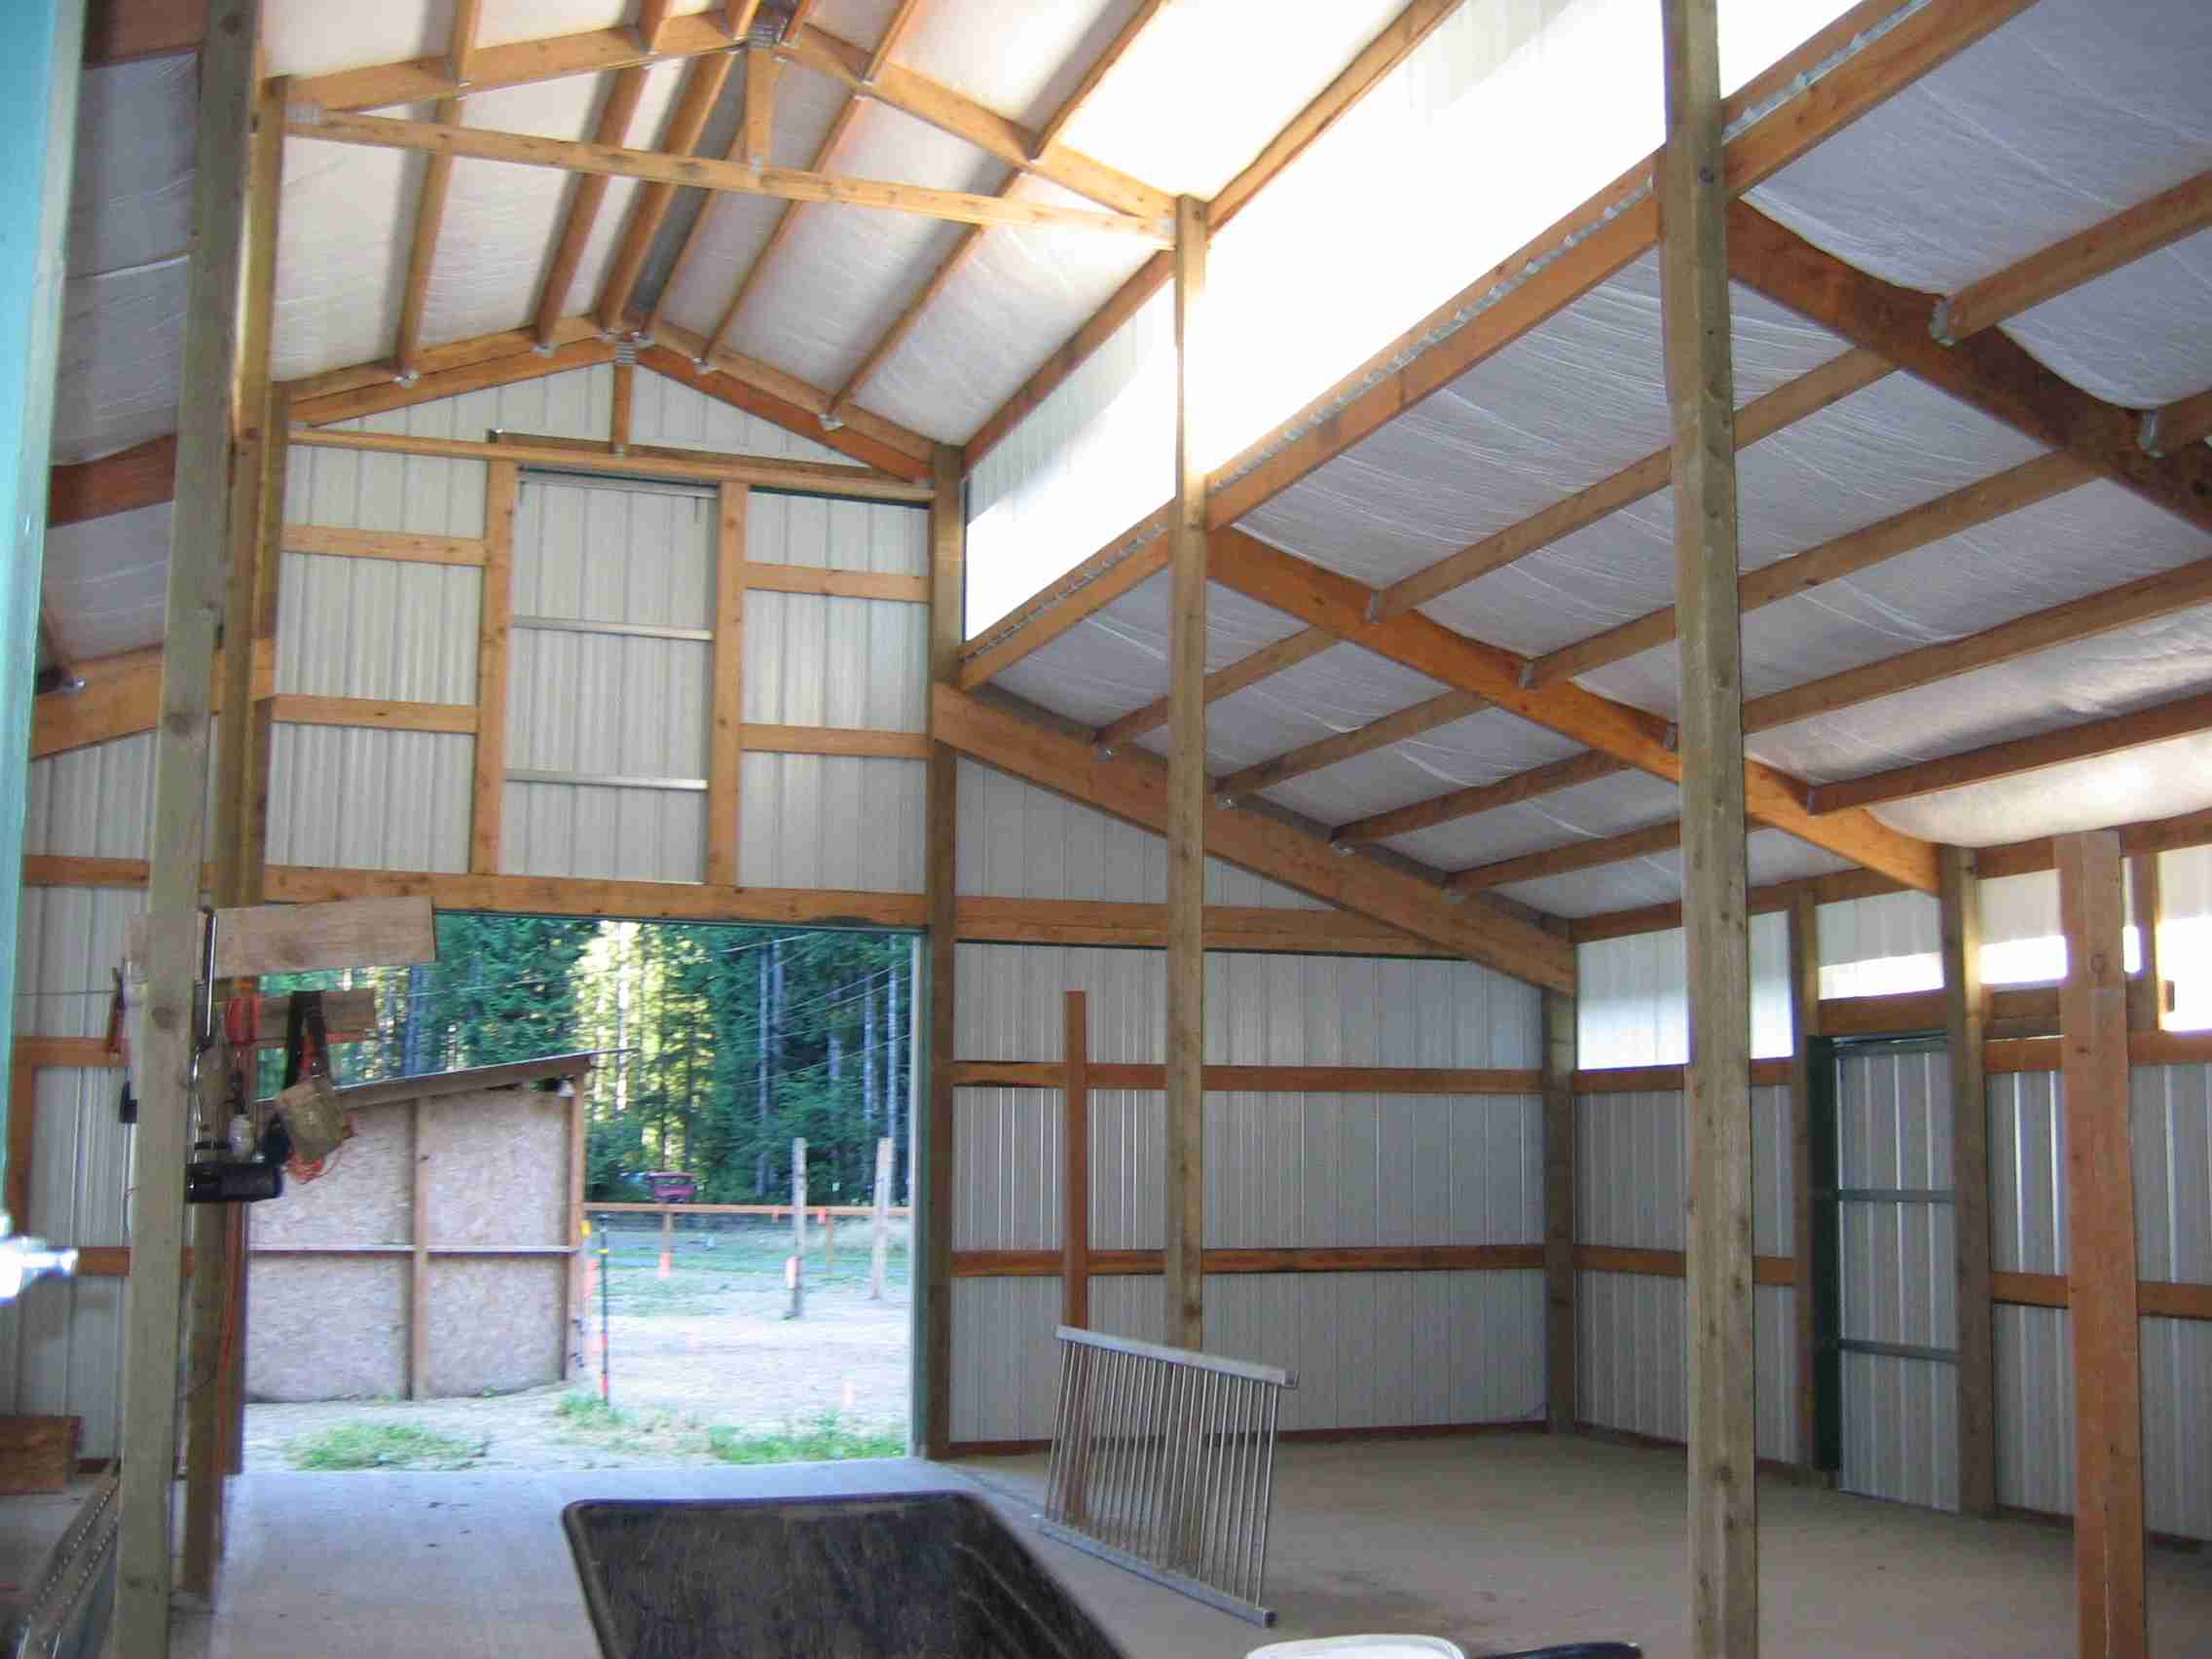 Monitor Barn Interior